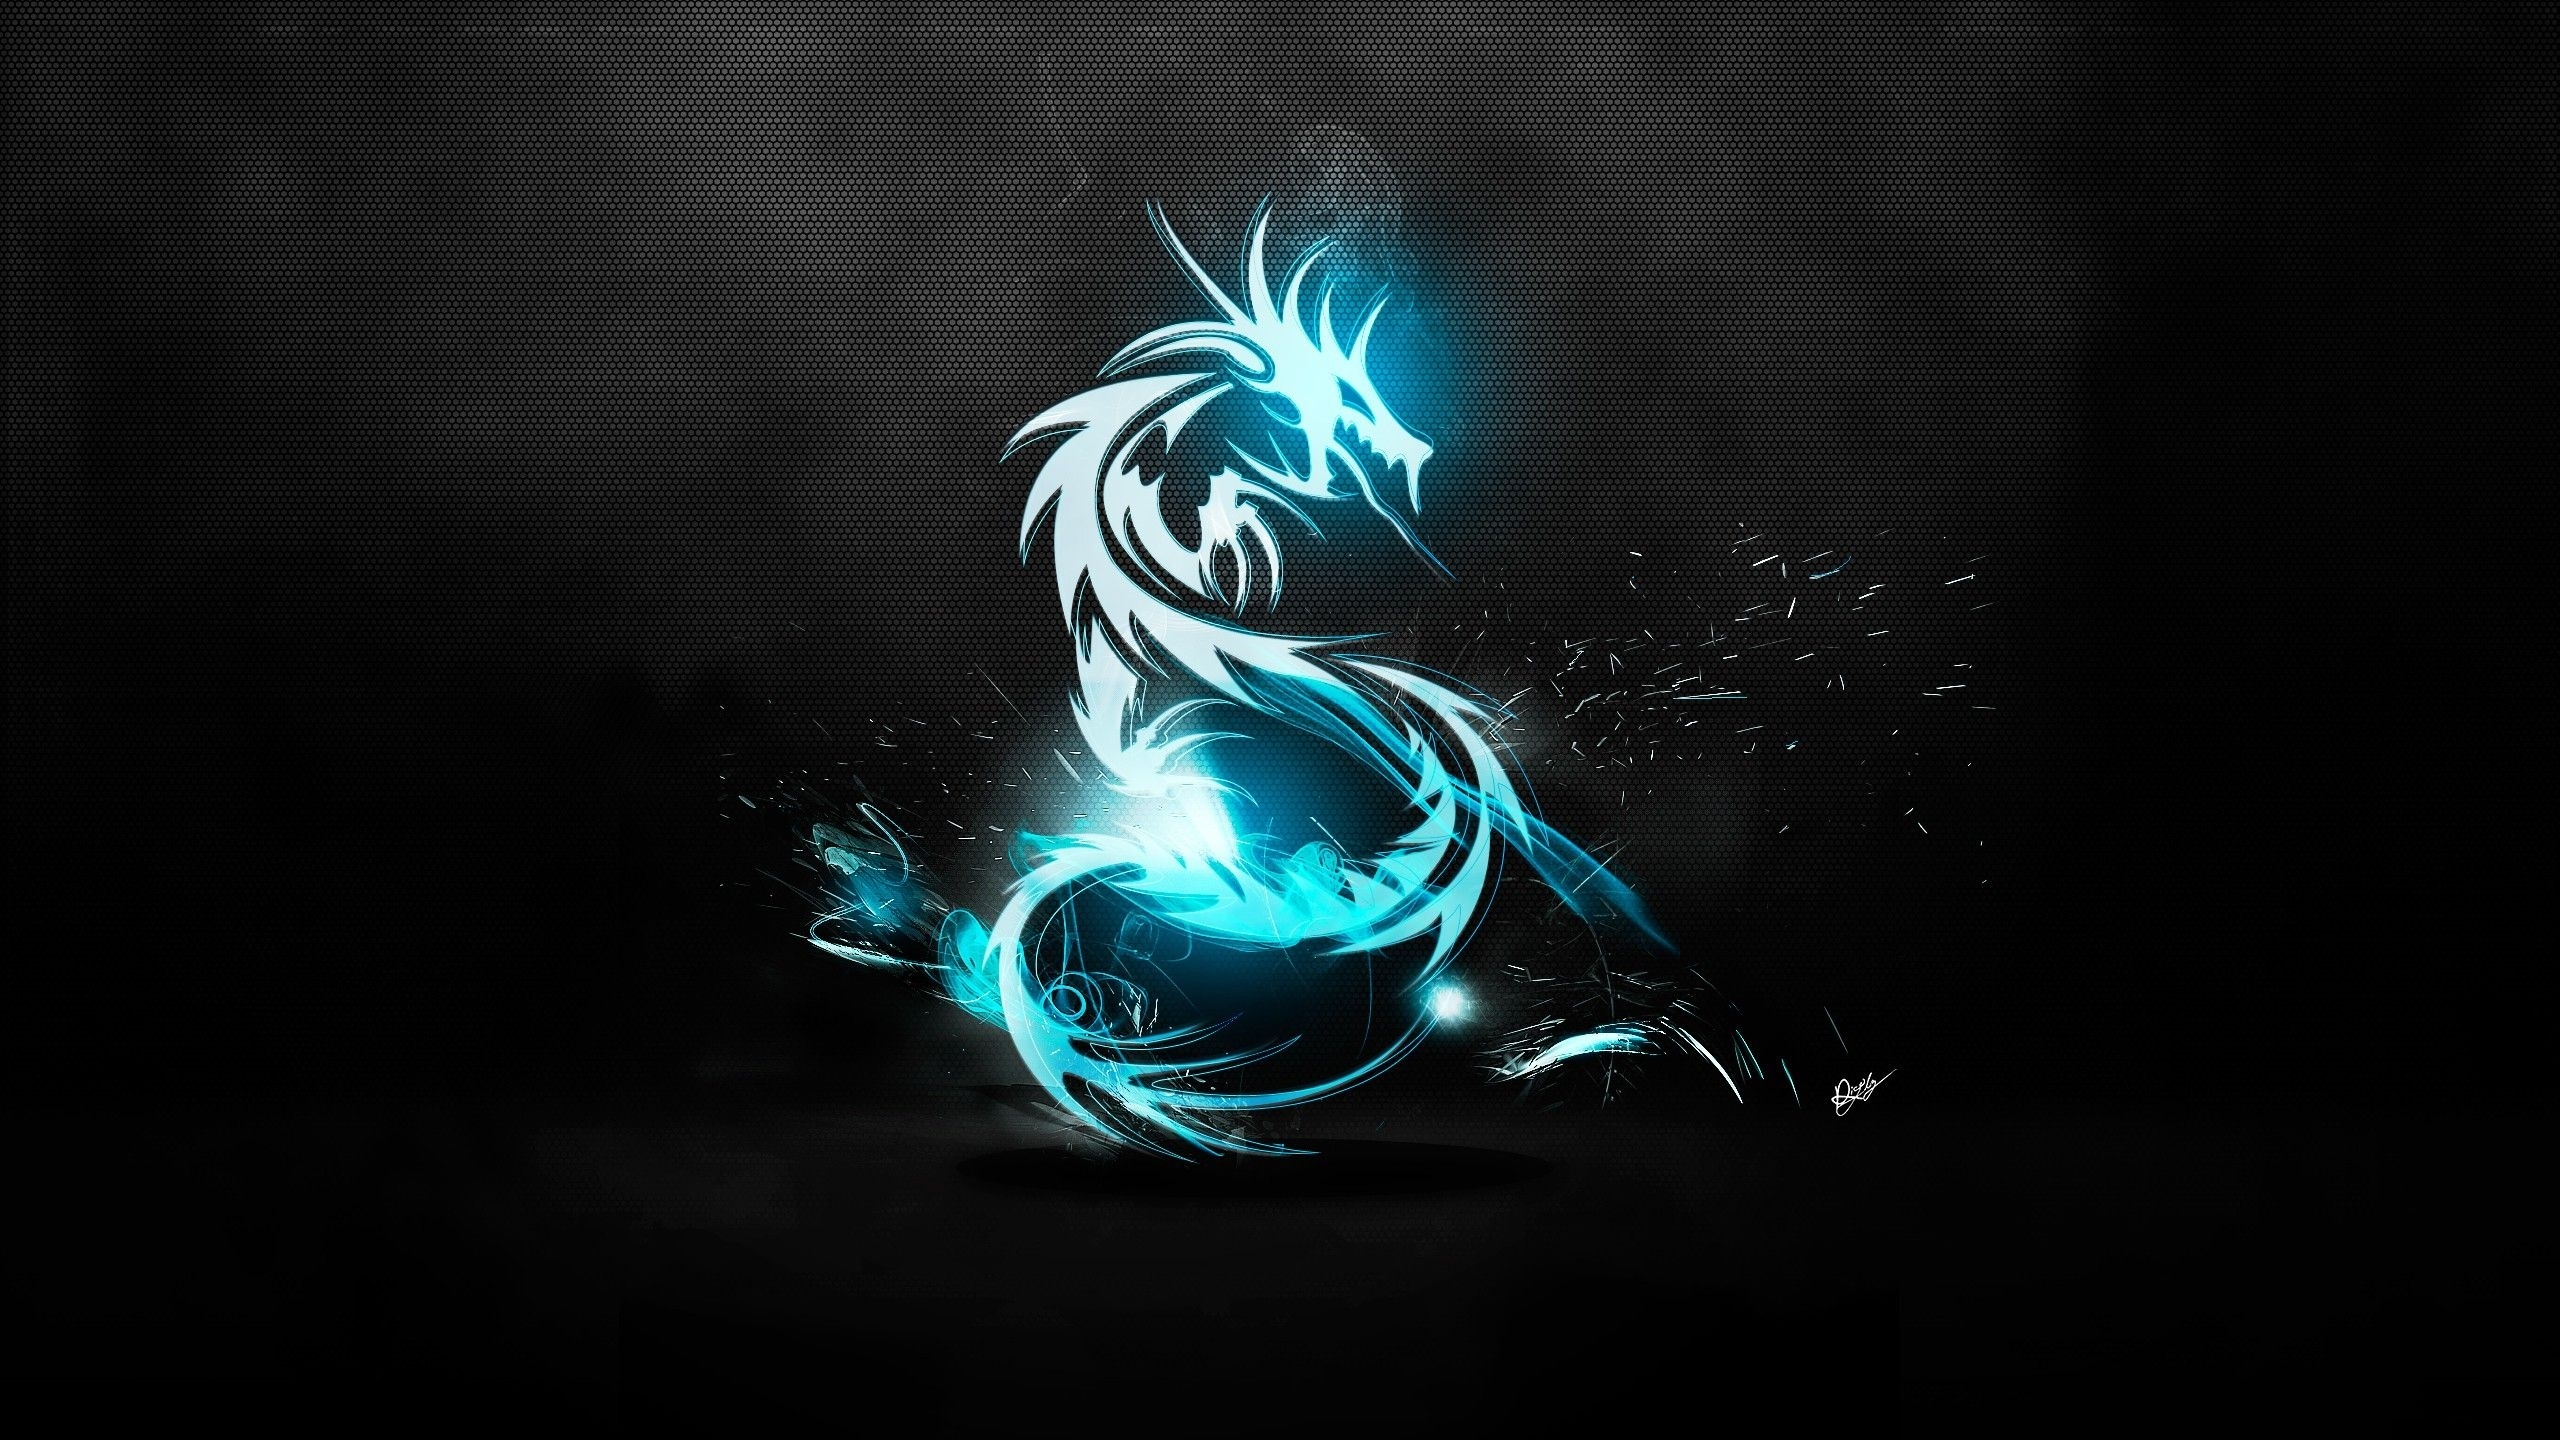 abstract blue blue dragon logos amd black background / 2560x1440